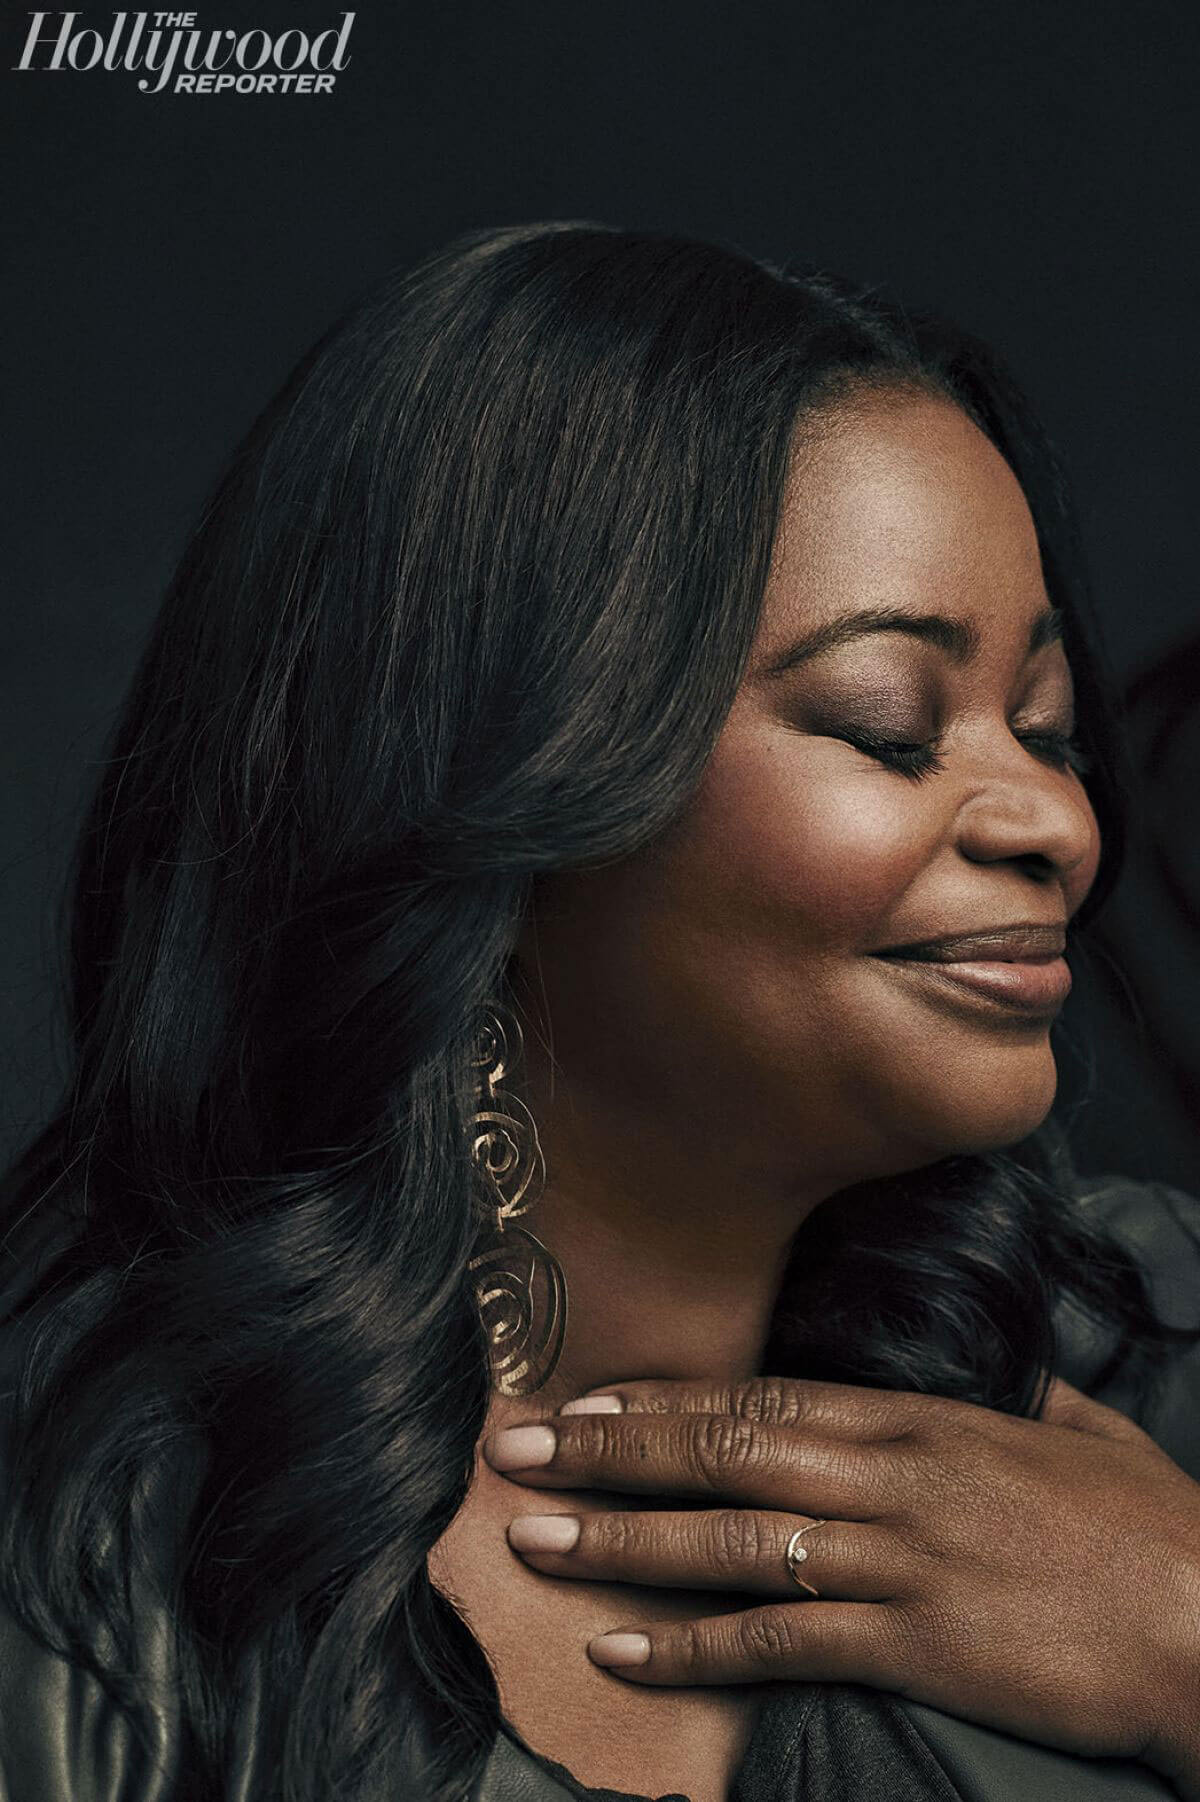 Octavia Spencer Poses for The Hollywood Reporter's Live Roundtable, December 2017